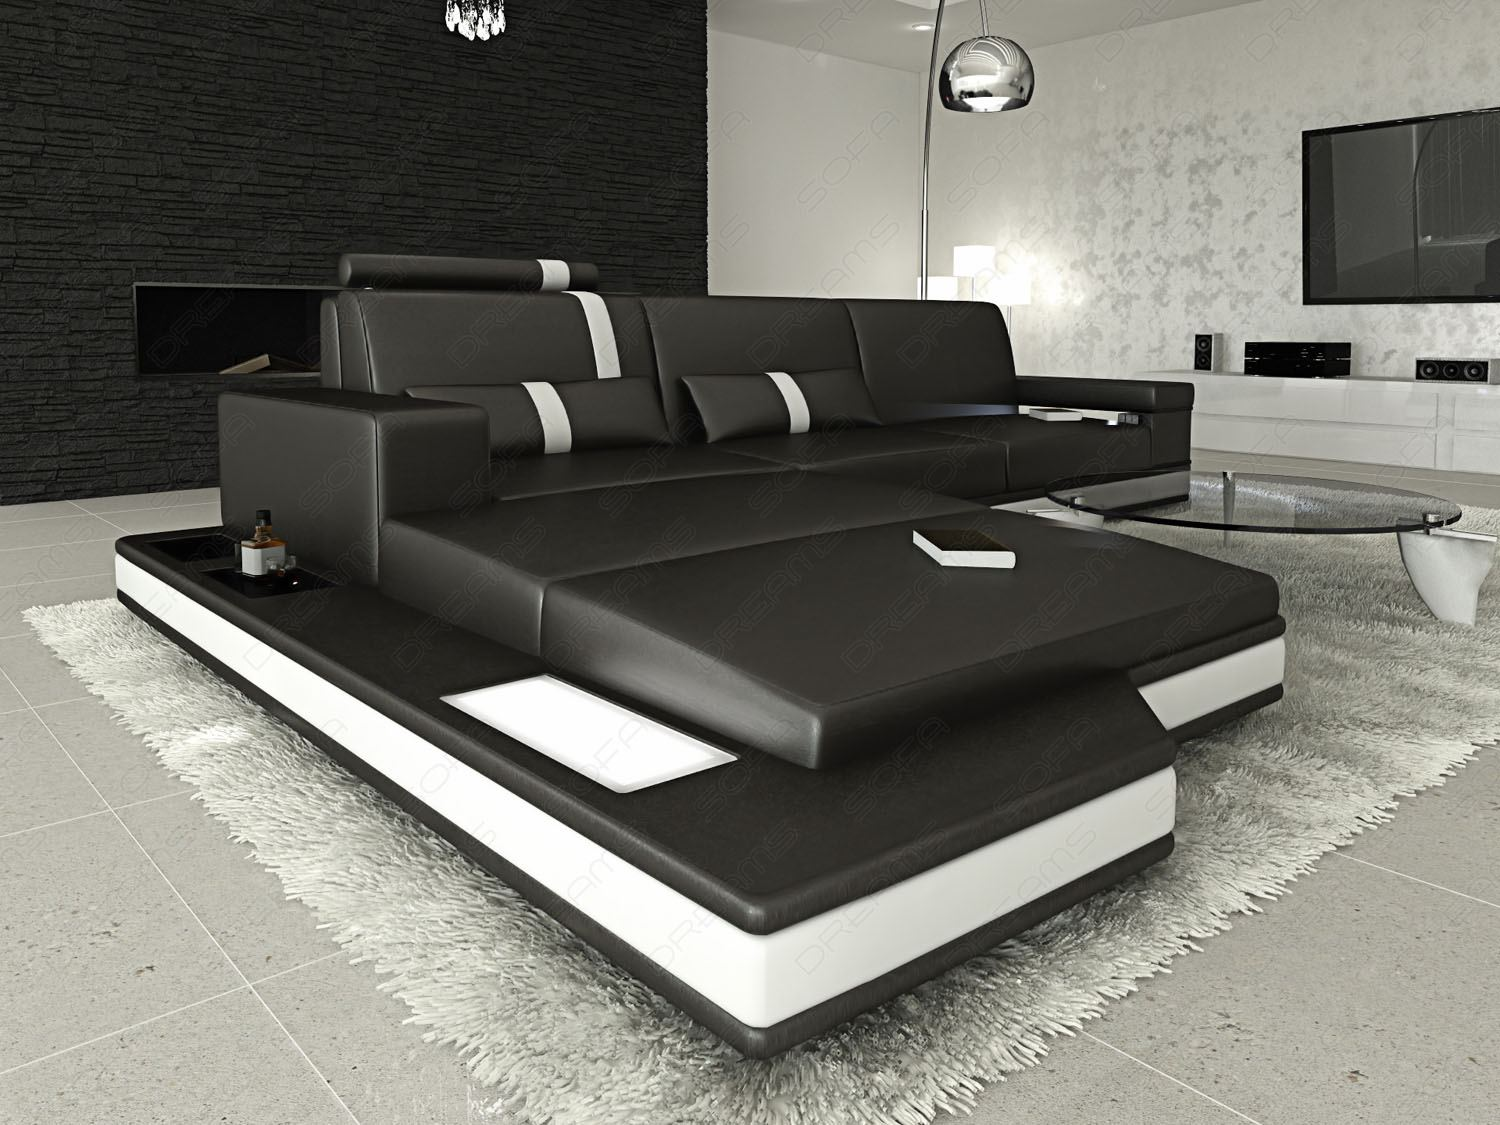 leather sofa messana l shape black white light designercouch corner sofa ebay. Black Bedroom Furniture Sets. Home Design Ideas